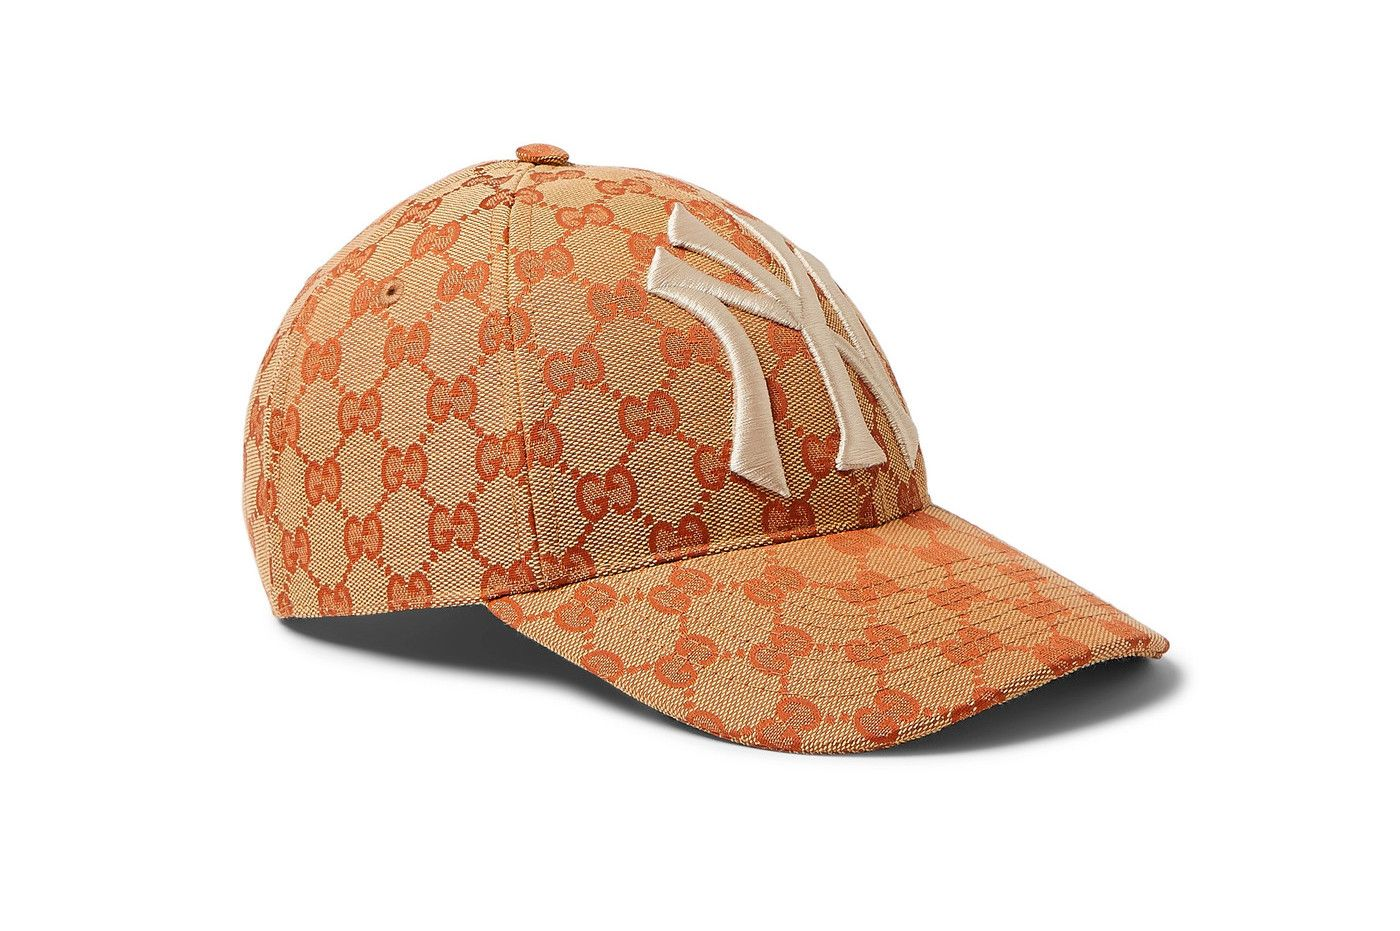 203965c9511283 Gucci New York Yankees Edition GG Supreme Patch Cap Release Info Date Brown  White NY Red accessories caps monogram GG italian fashion